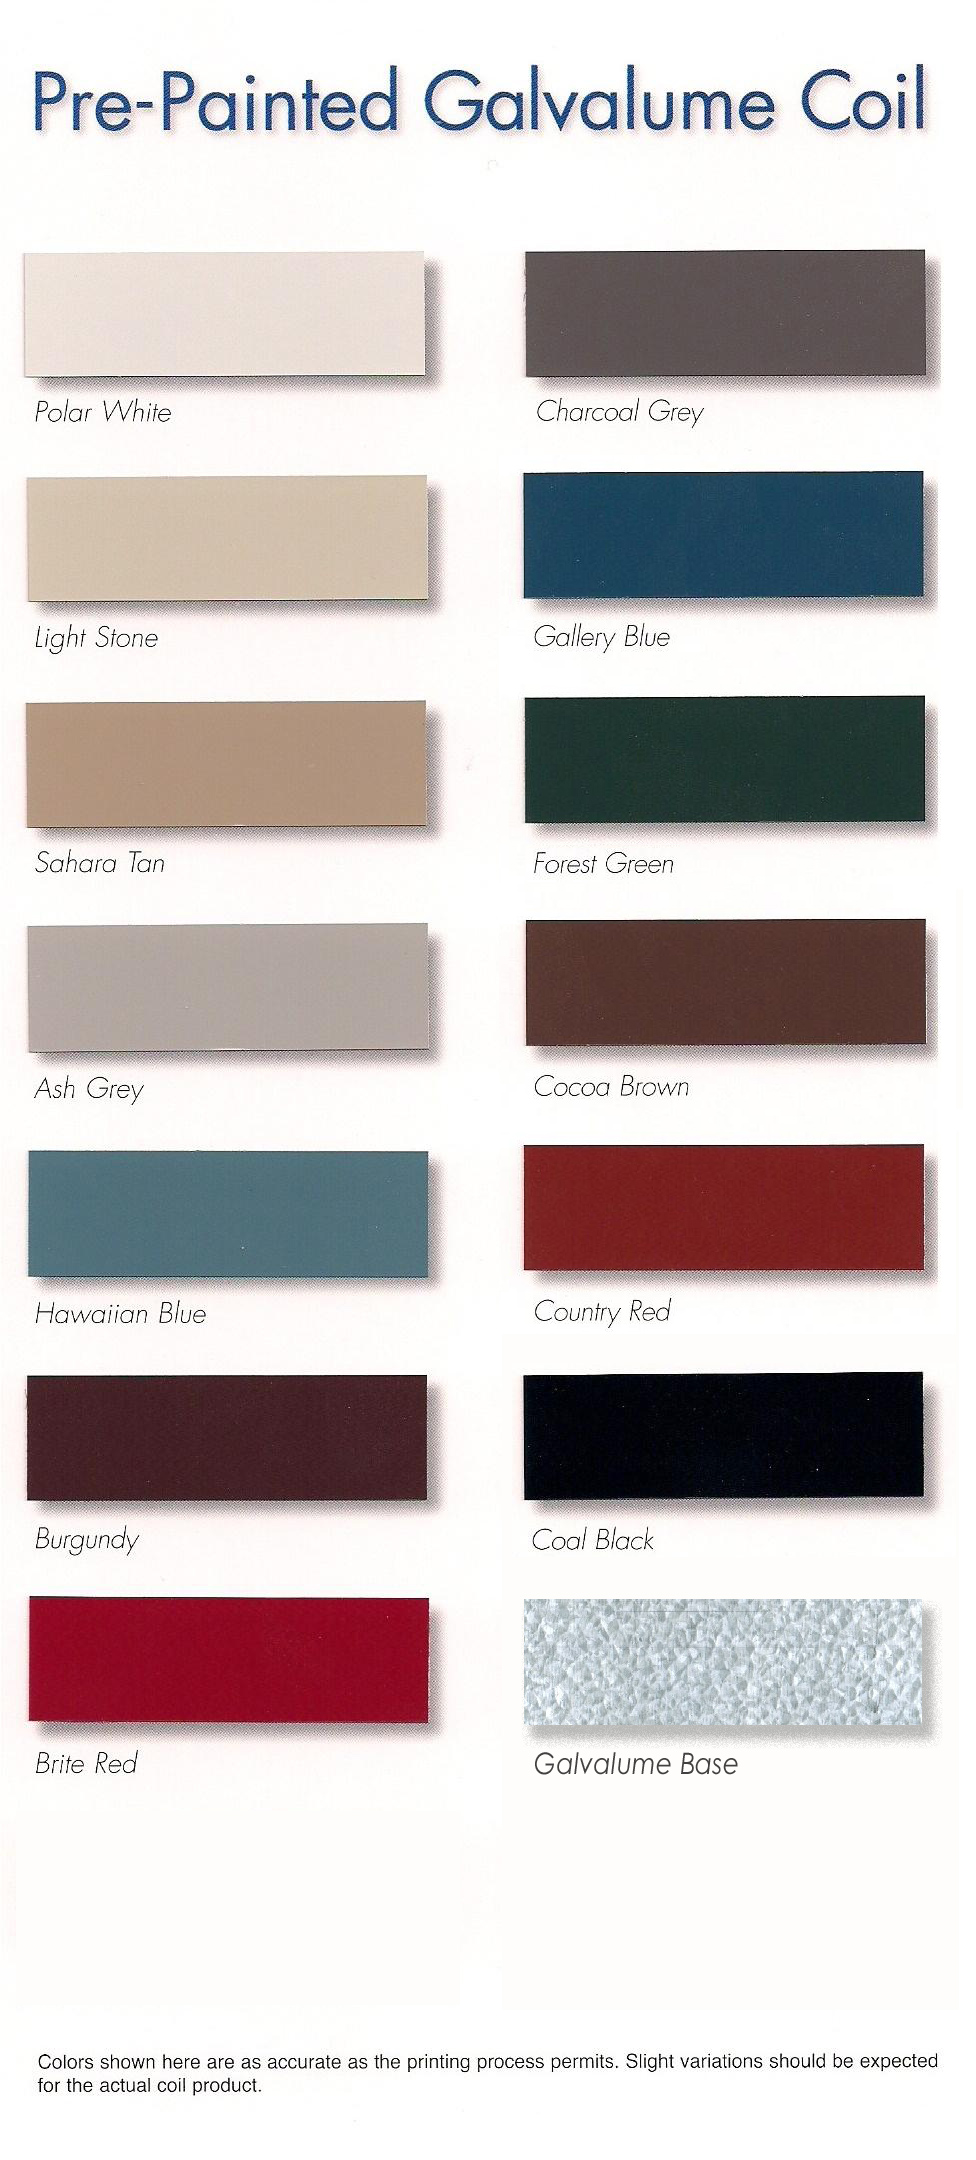 Jonestruss jones building systems metal roofing metal roofing color choices nvjuhfo Choice Image